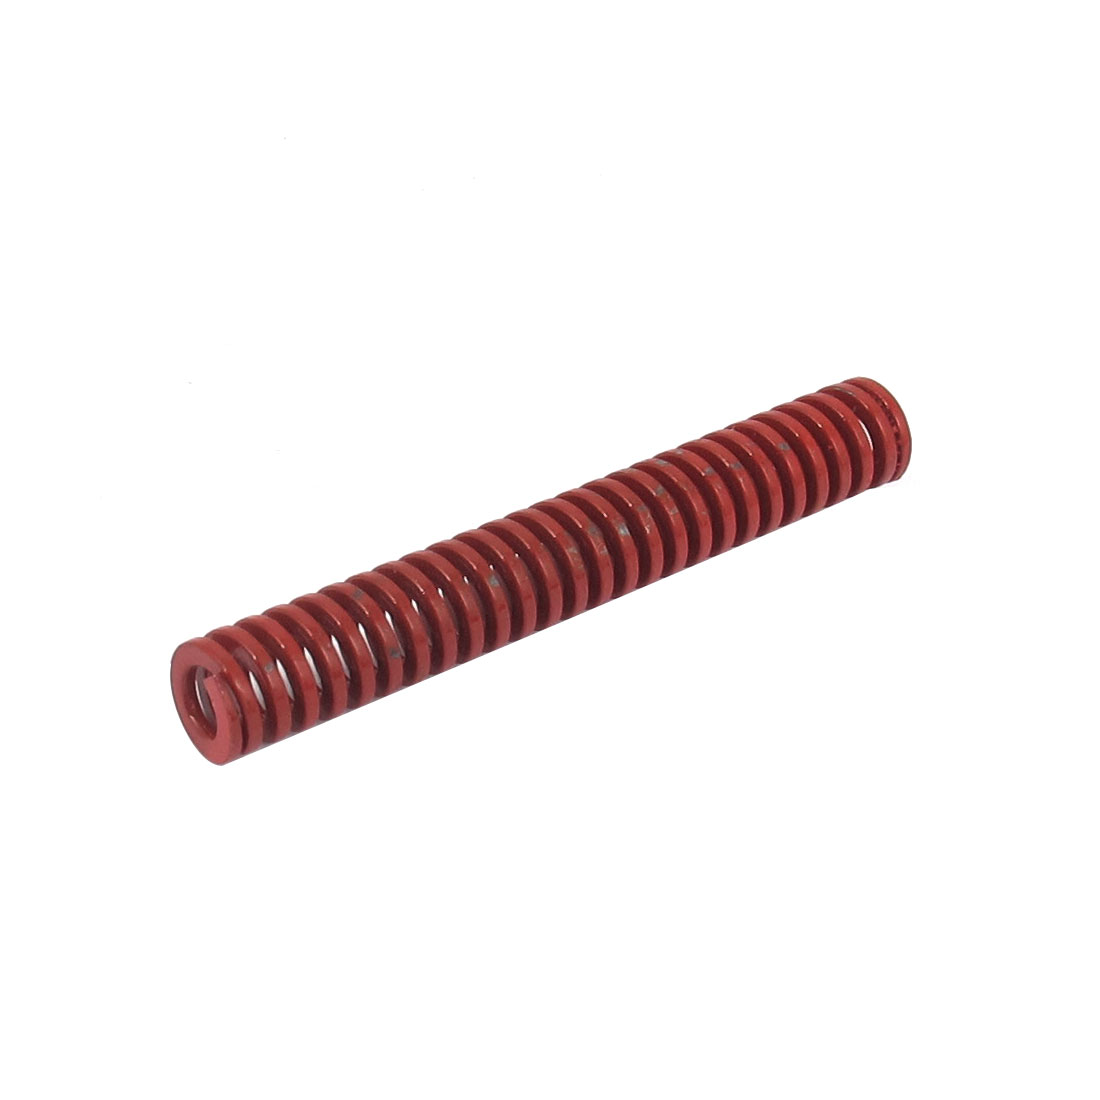 8mm OD 55mm Long Medium Load Spiral Stamping Compression Die Spring Red